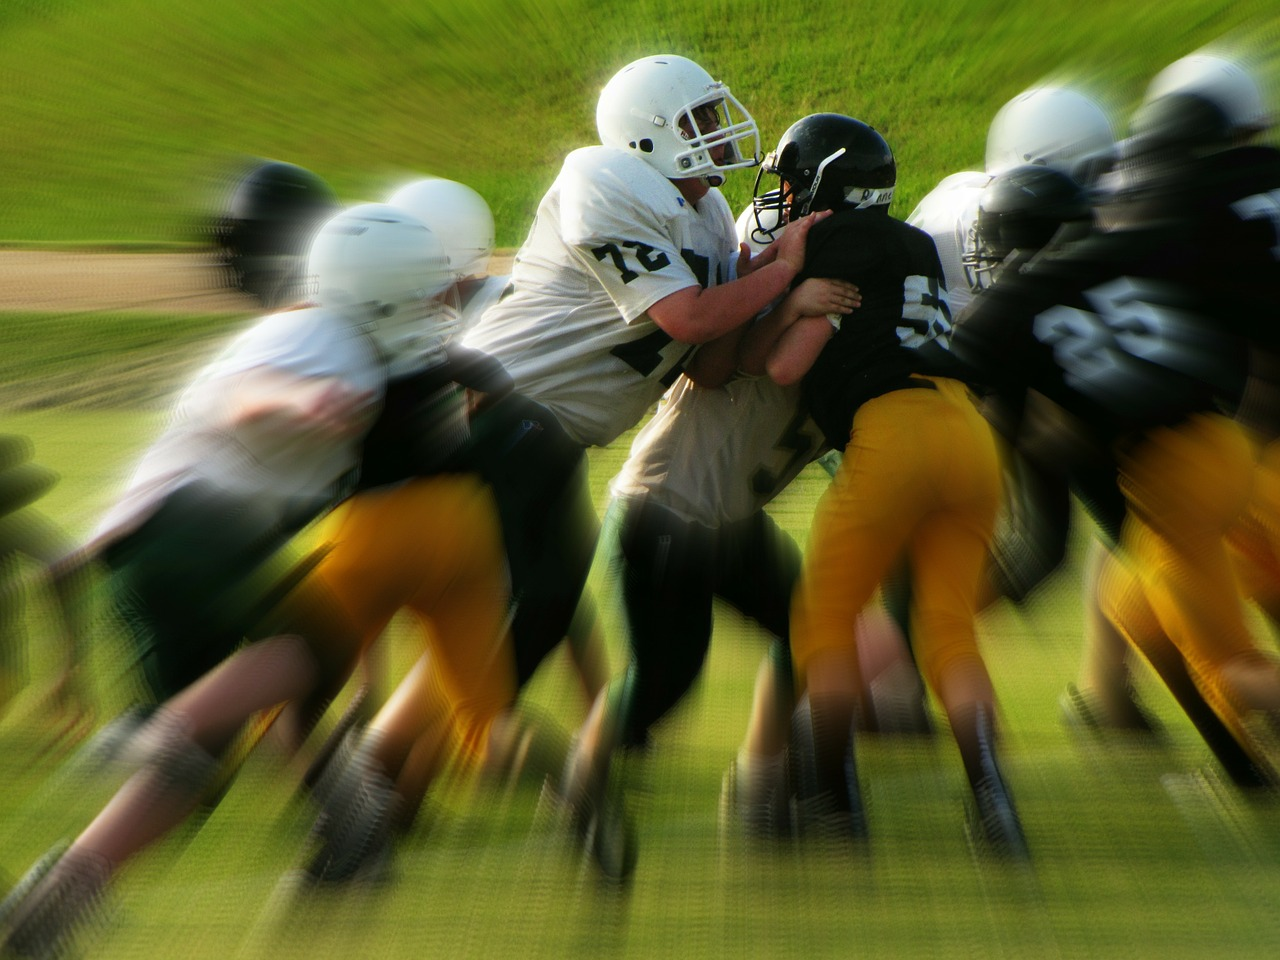 DMC Sports Medicine to Offer ImPACT Baseline Concussion Screening for Athletes Ages 12-18